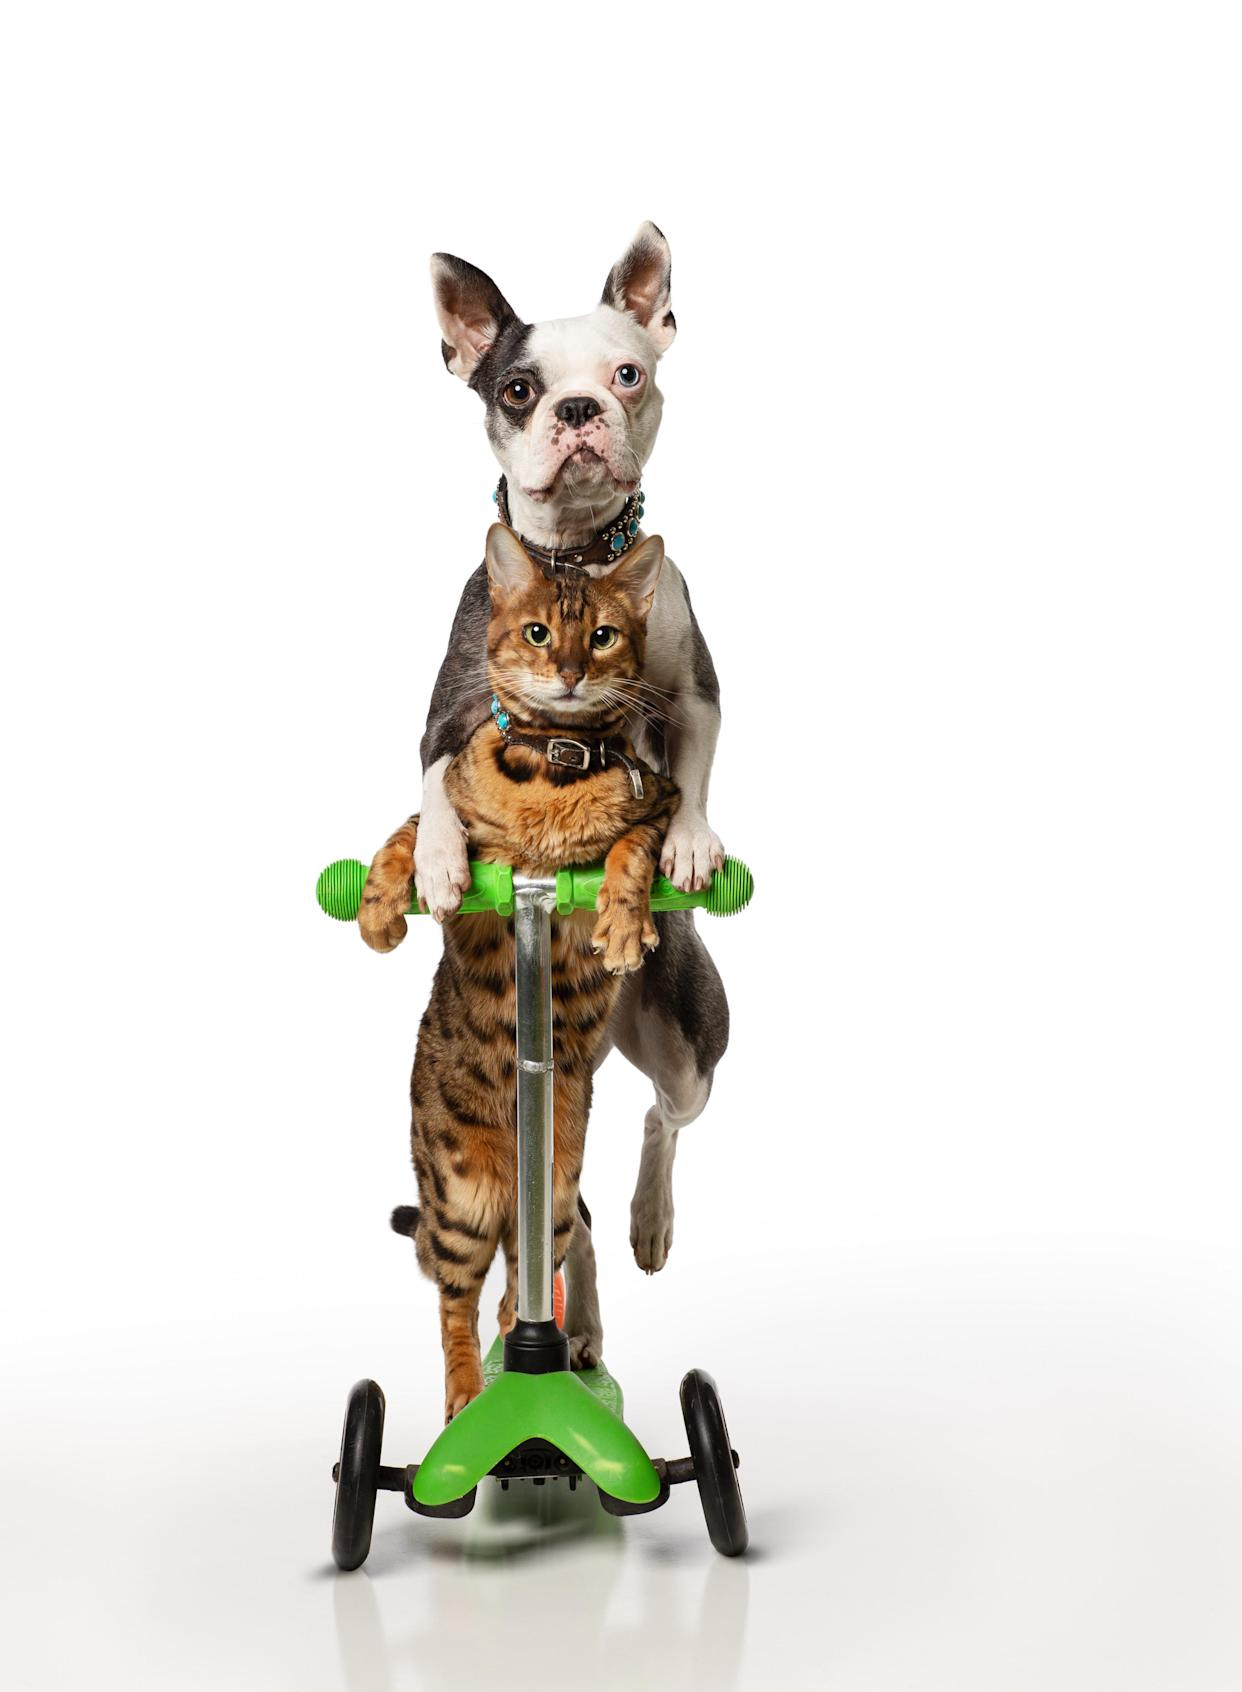 Lollipop and Sashimi completed the fastest 5m on a scooter by a dog and cat (Guinness World Records 2022)